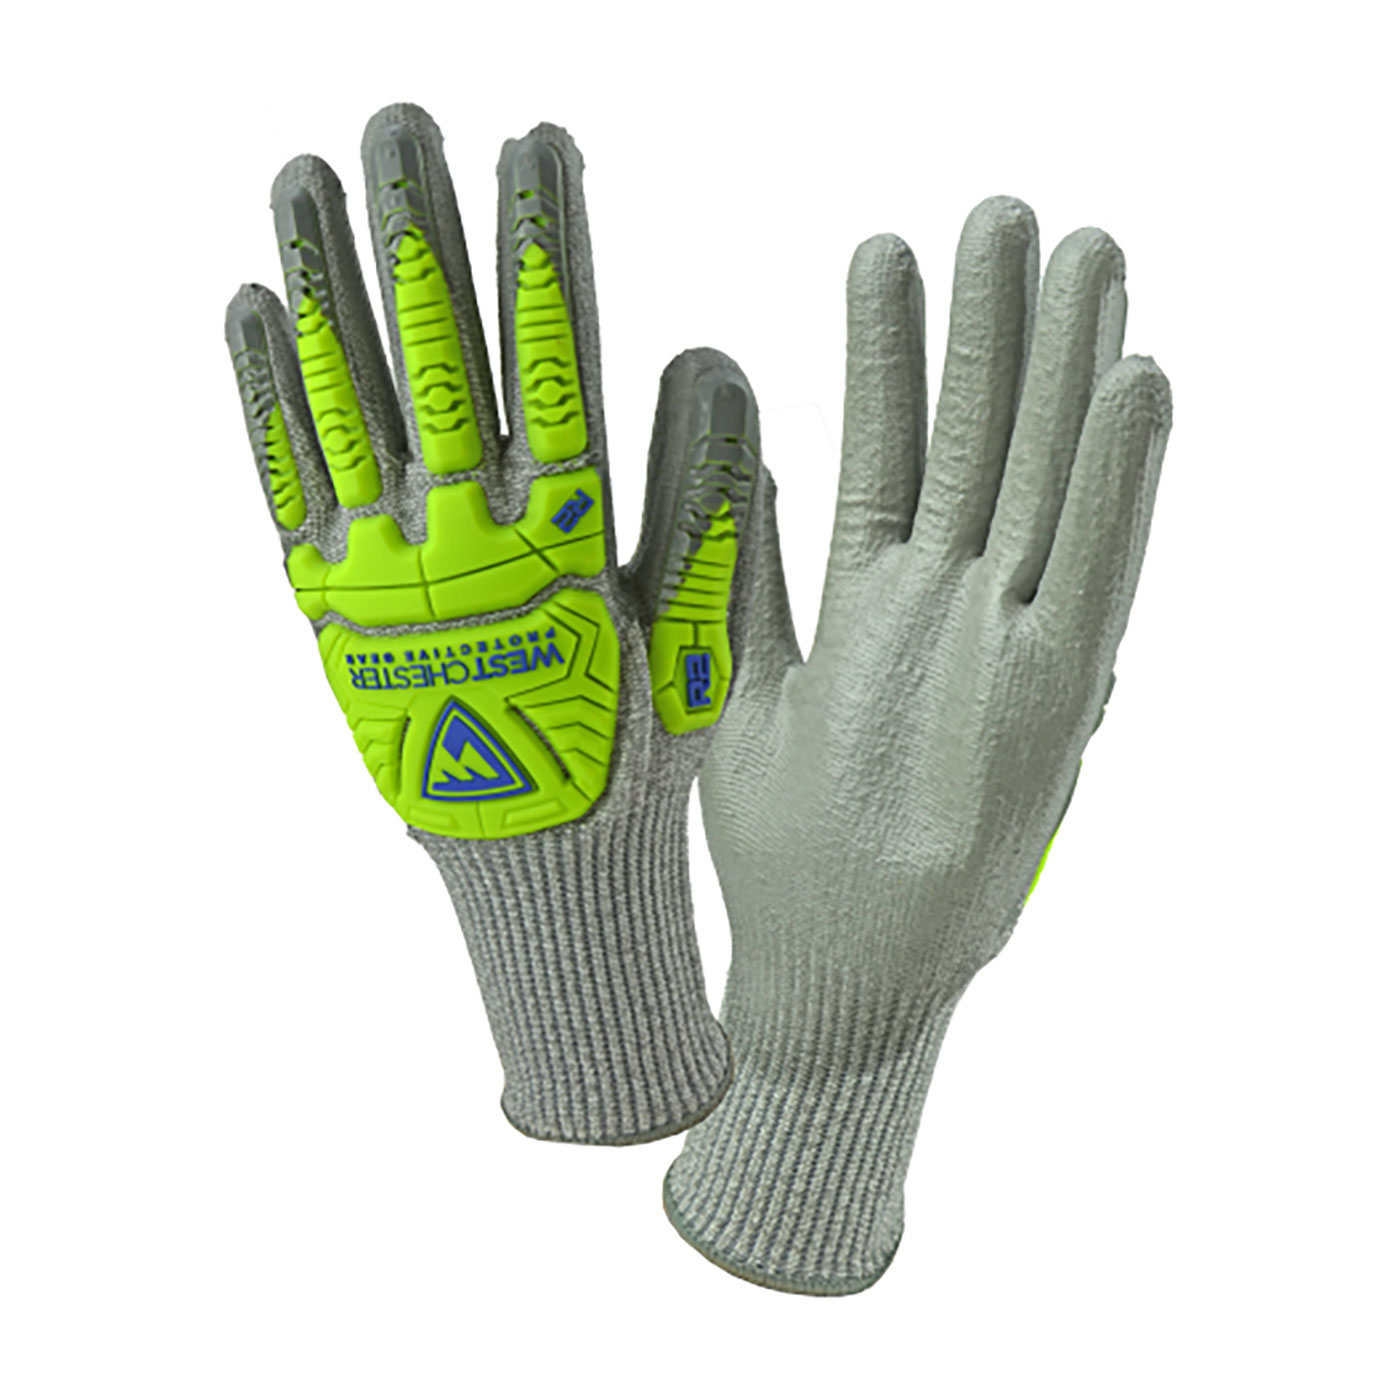 West Chester 710HGUBHVG 2X 710HGUBHVG R2™ Seamless Knit HPPE Blended Cut-Resistant Gloves, 2X-Large, HPPE, Gray, Rib Knit Cuff